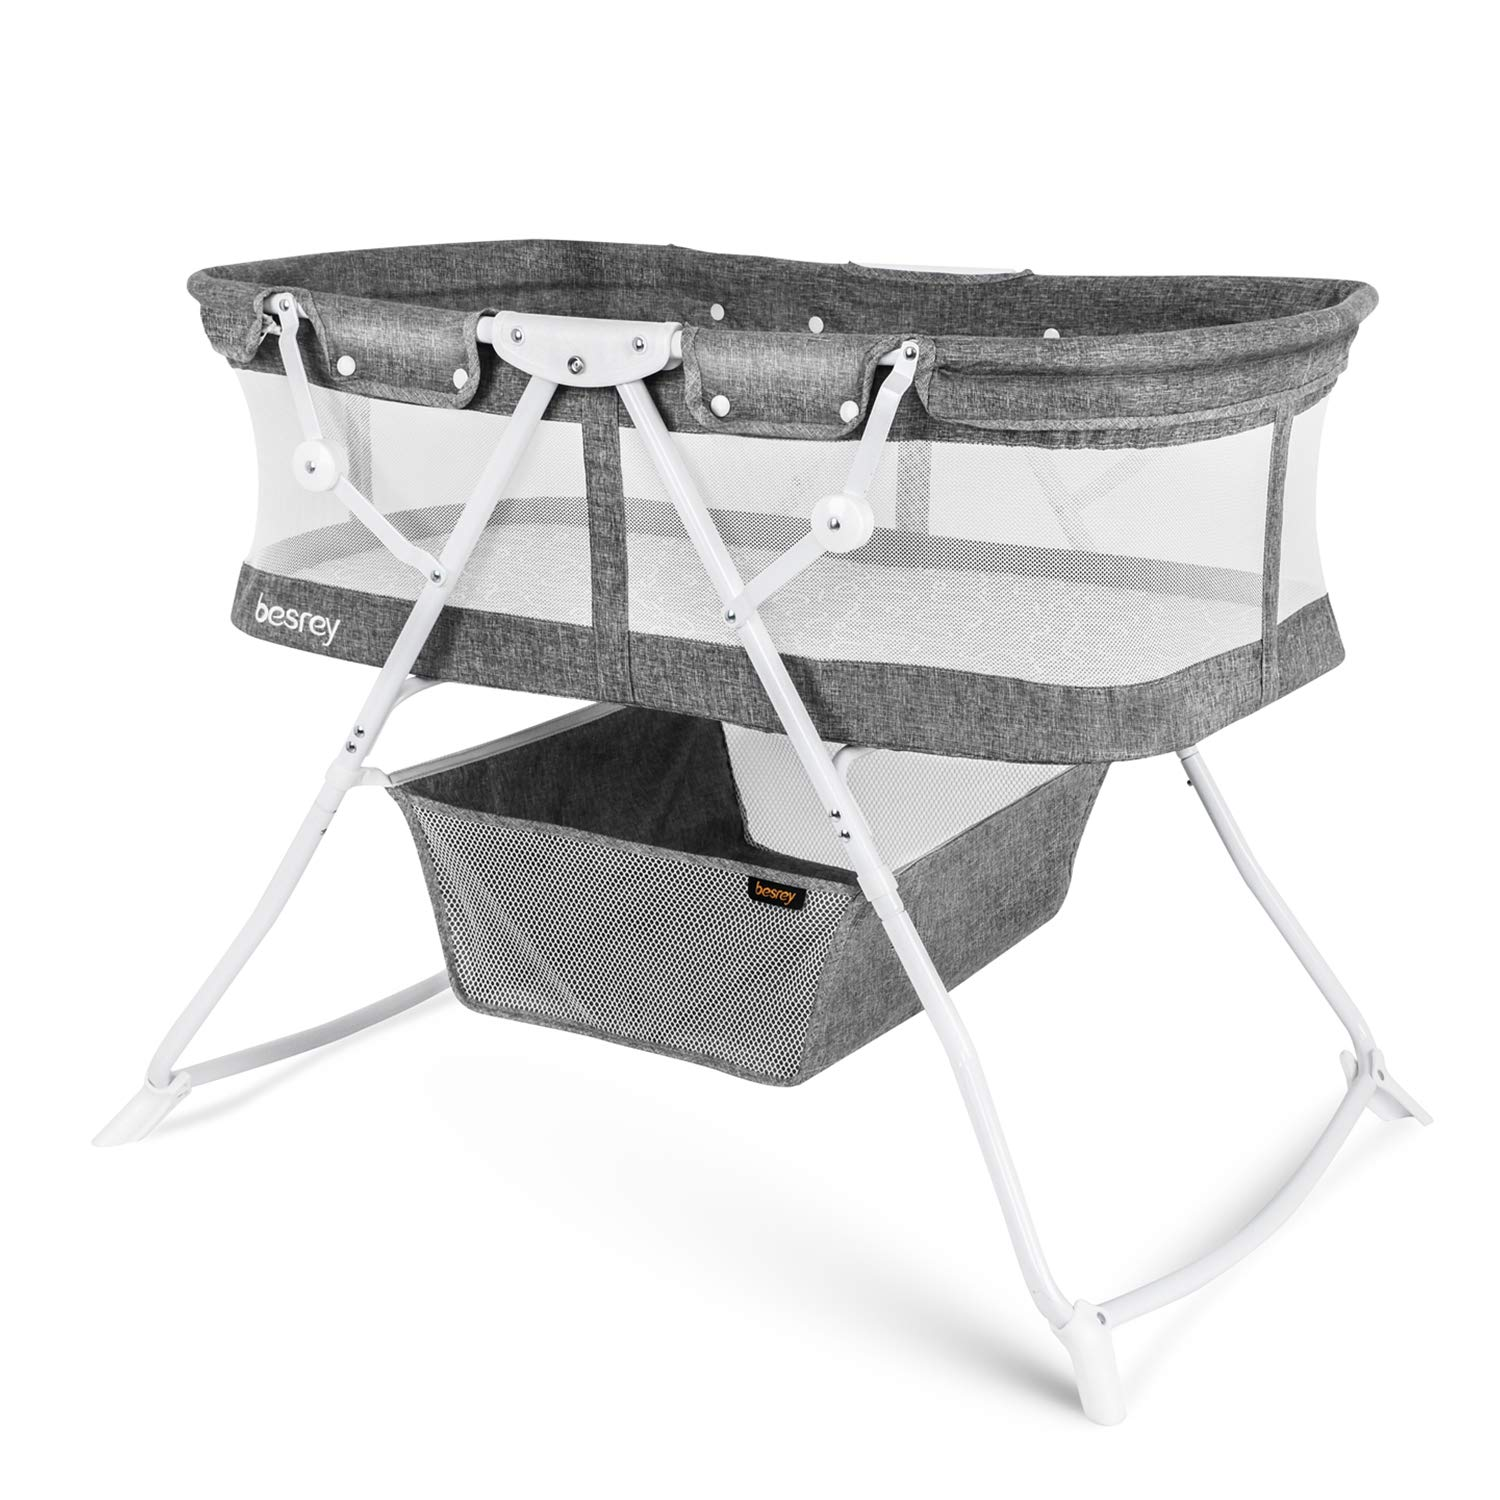 besrey Baby Bassinet Baby Bed with Breathable Net/Harmless Mattress/Quick Foldable Design for up 33 lbs/ 5 Months Infant, Baby - Grey